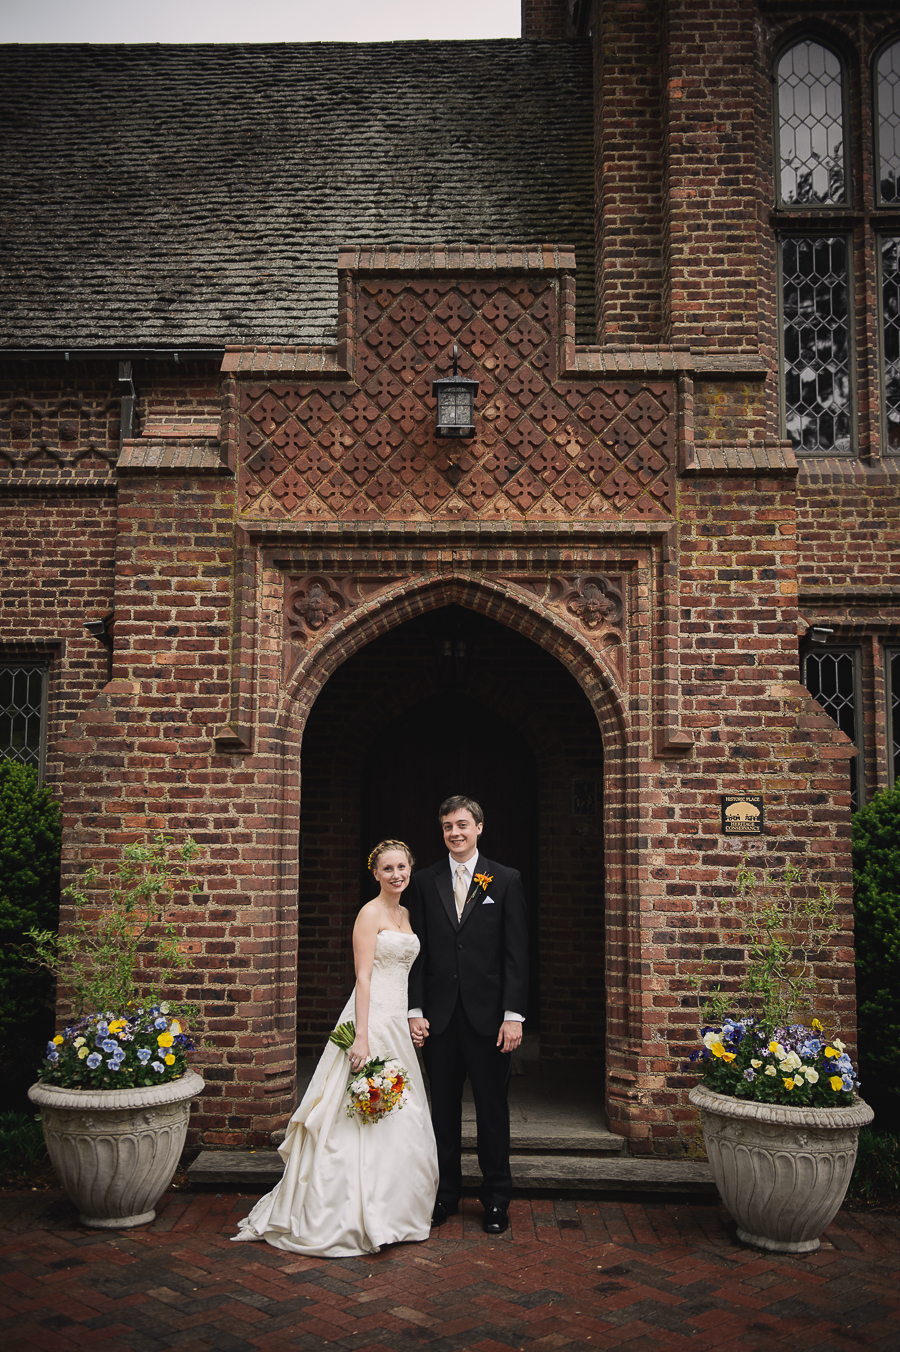 NinaLilyPhotography_AldieMansionWedding_Blog046.jpg